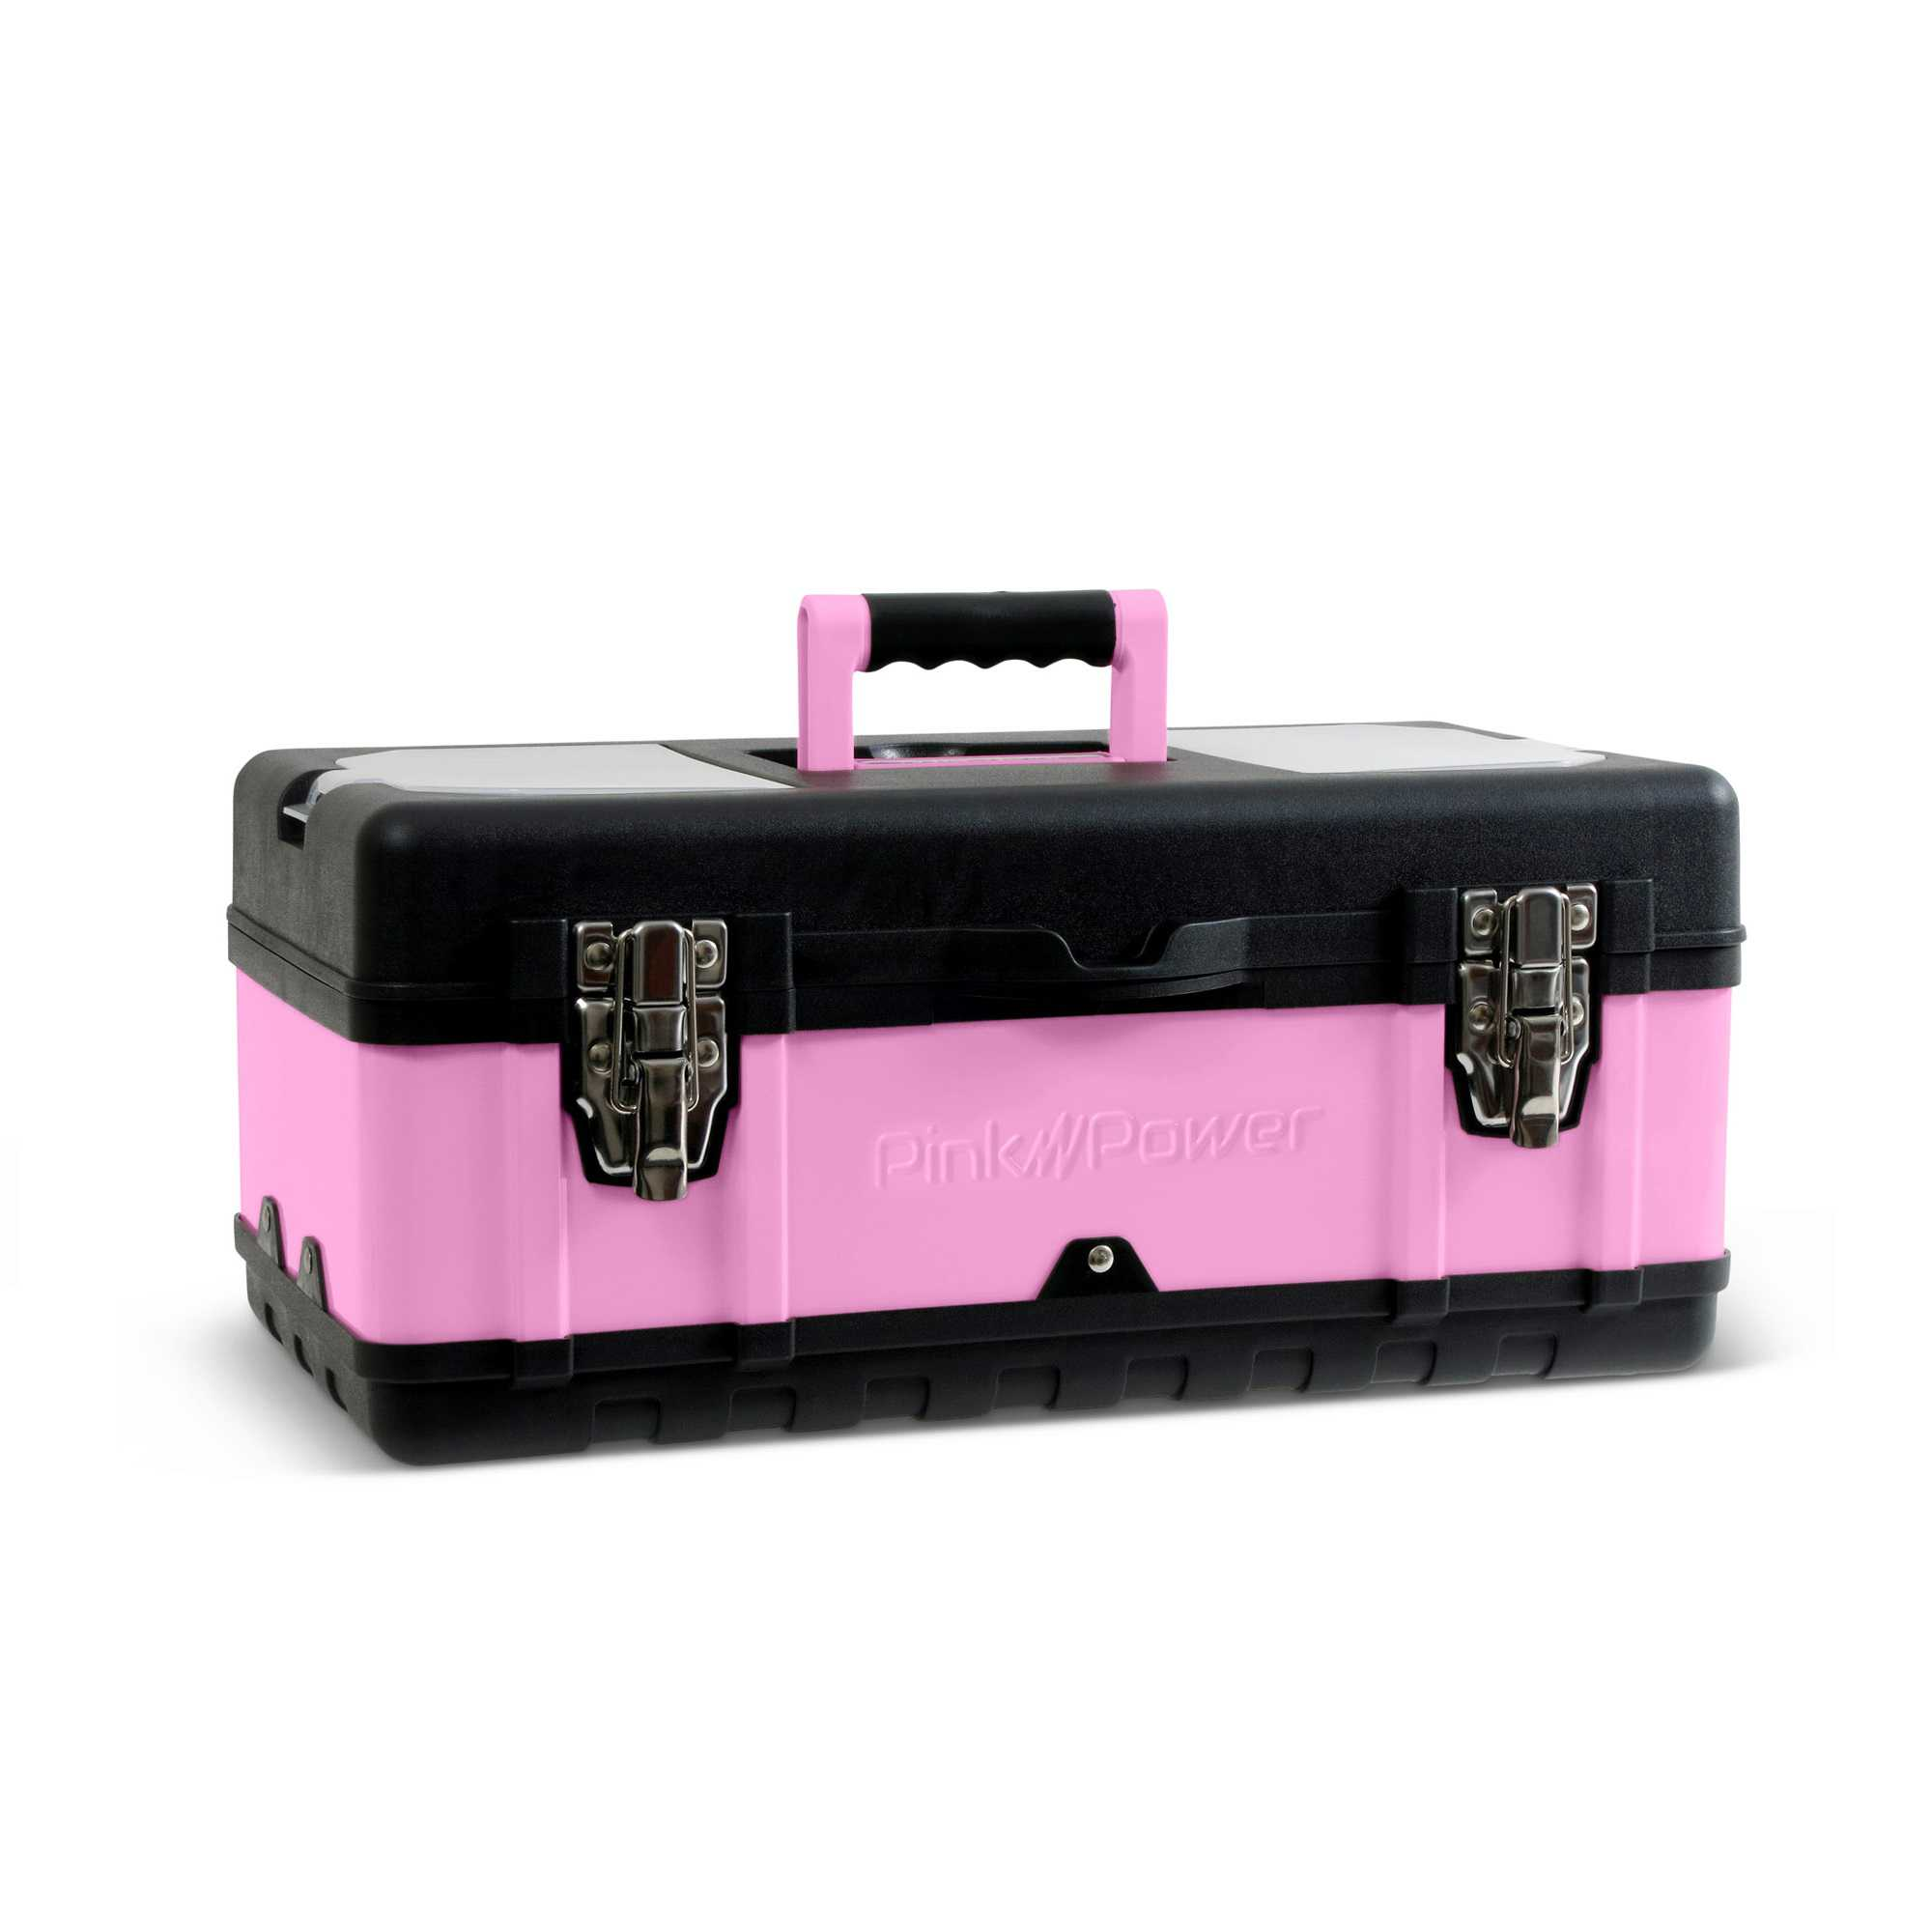 Pink Power 18' Portable Aluminum Tool Box for Tool or Craft Storage- Locking Lid and Extra Storage Compartments